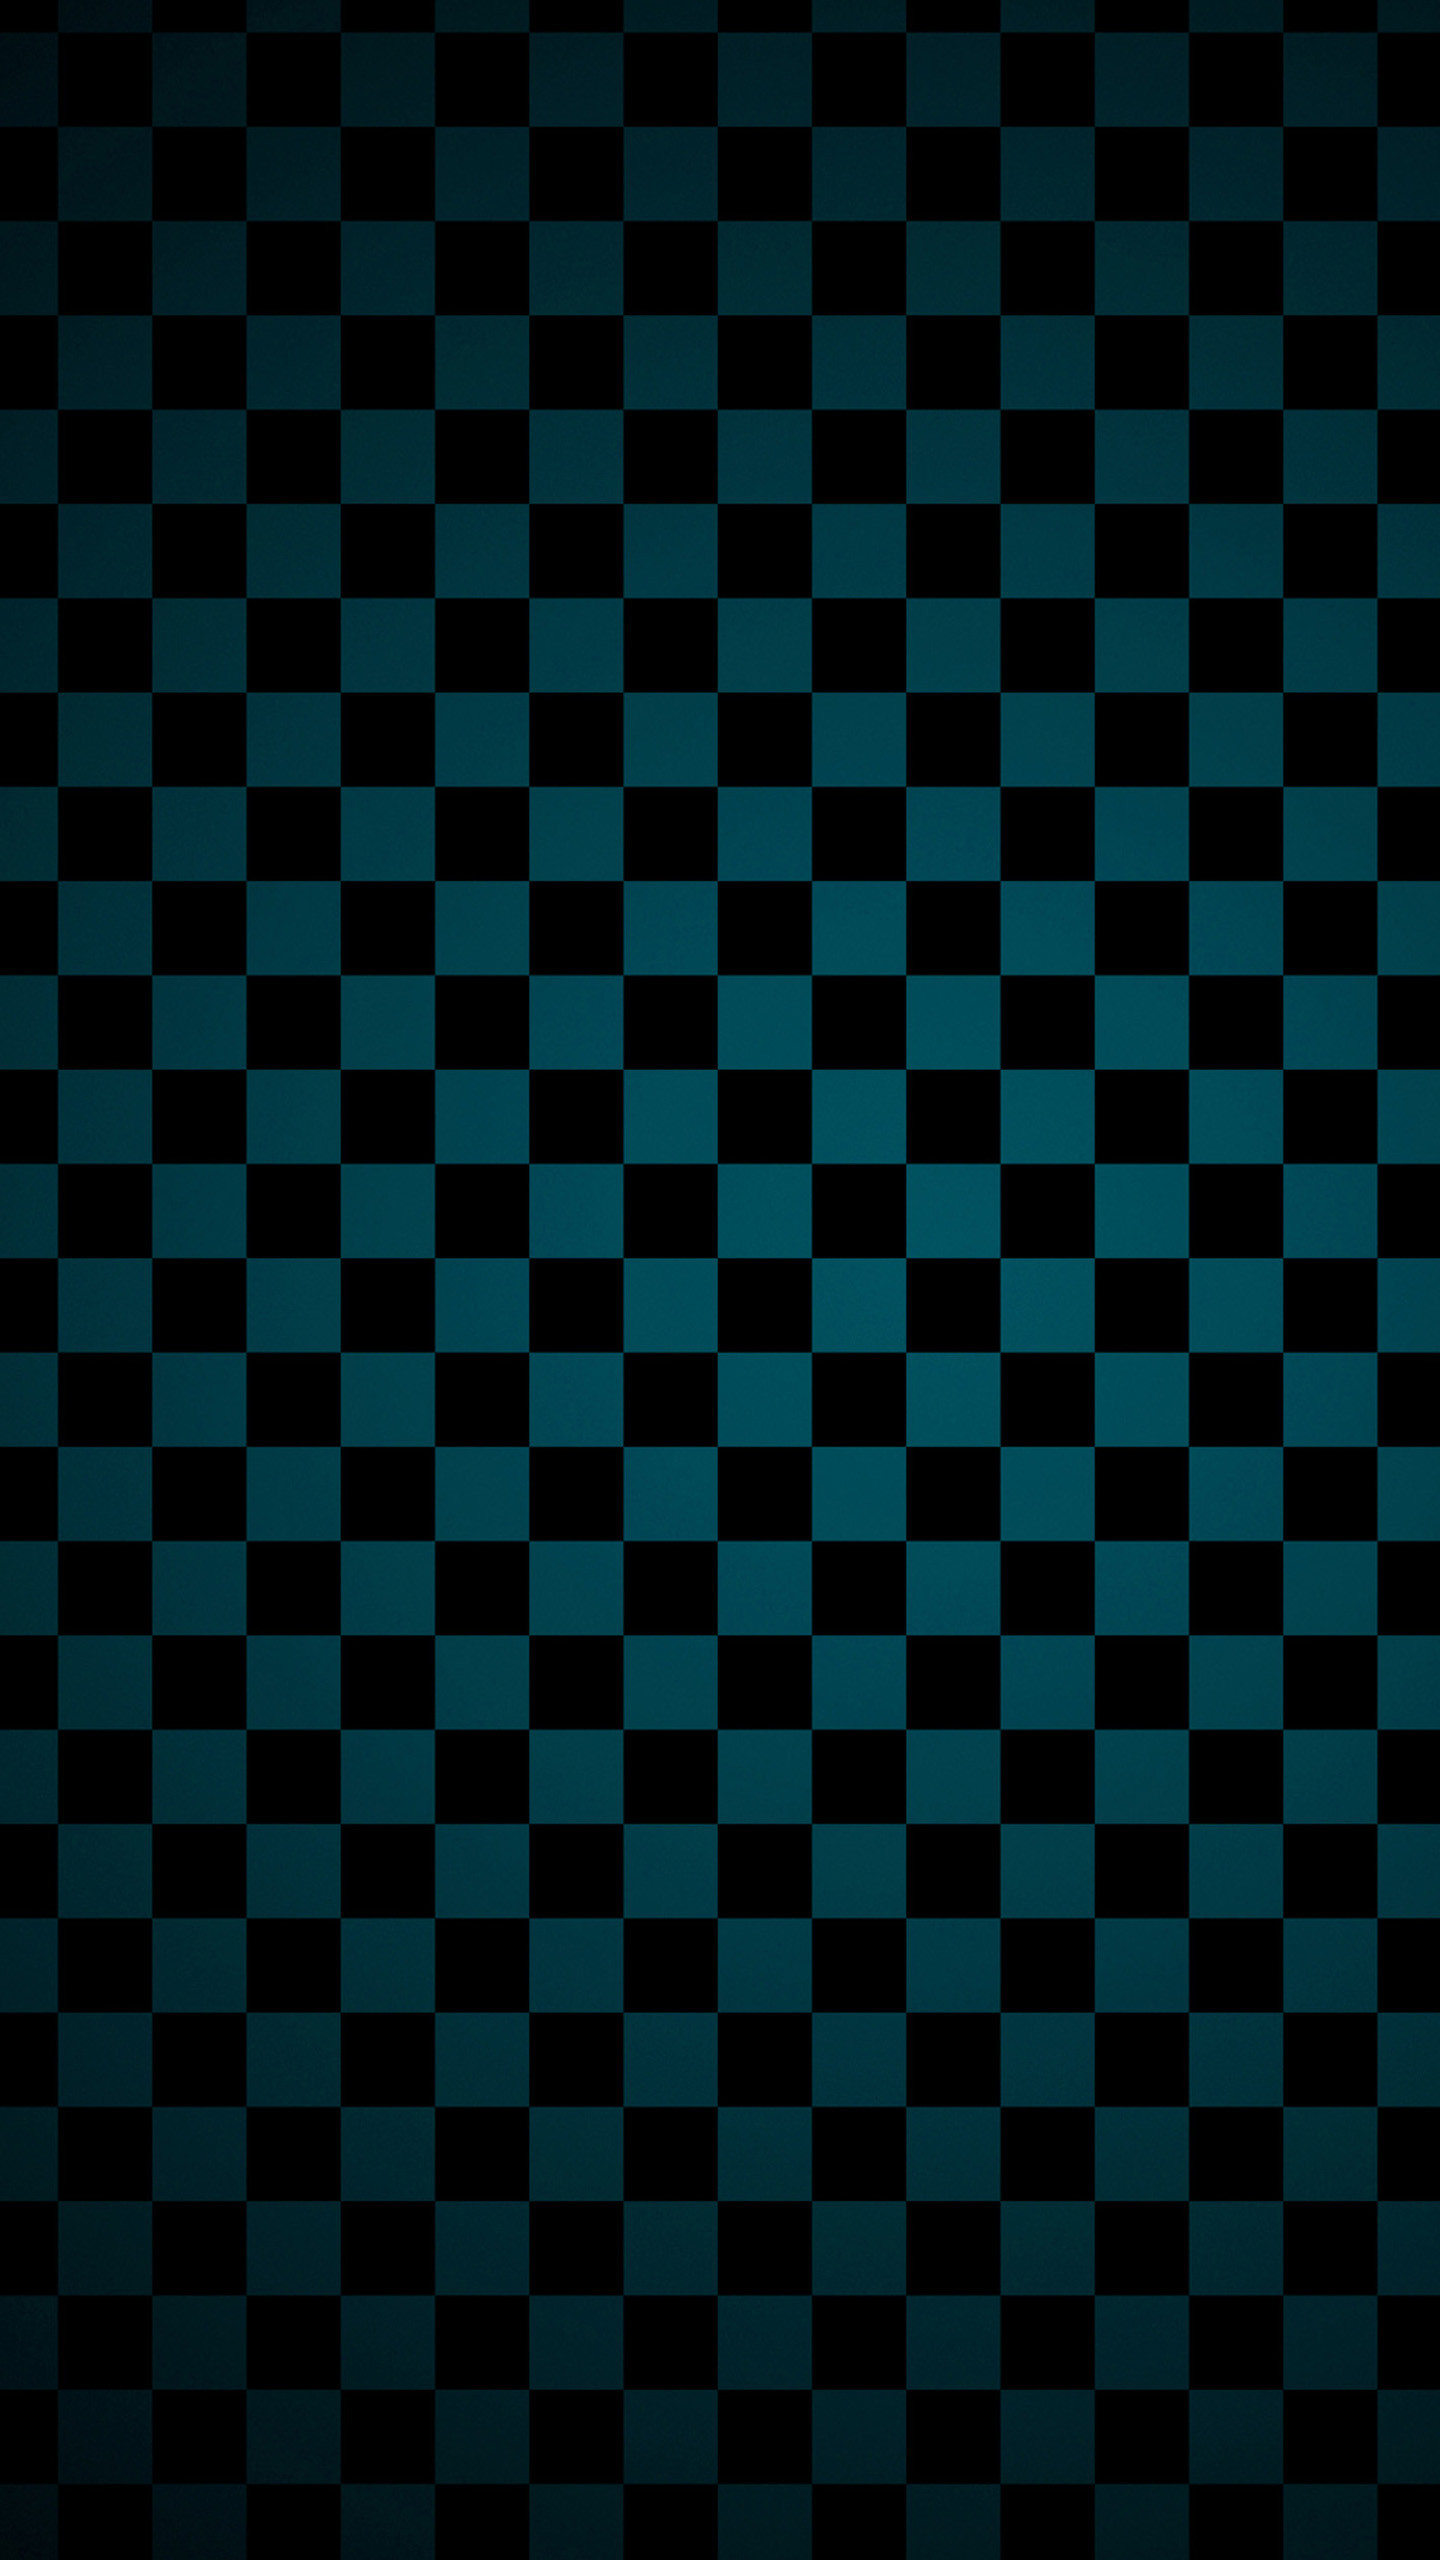 1440x2560 Free Colorful Galaxy Note 4 Wallpapers Part 19 Black Color